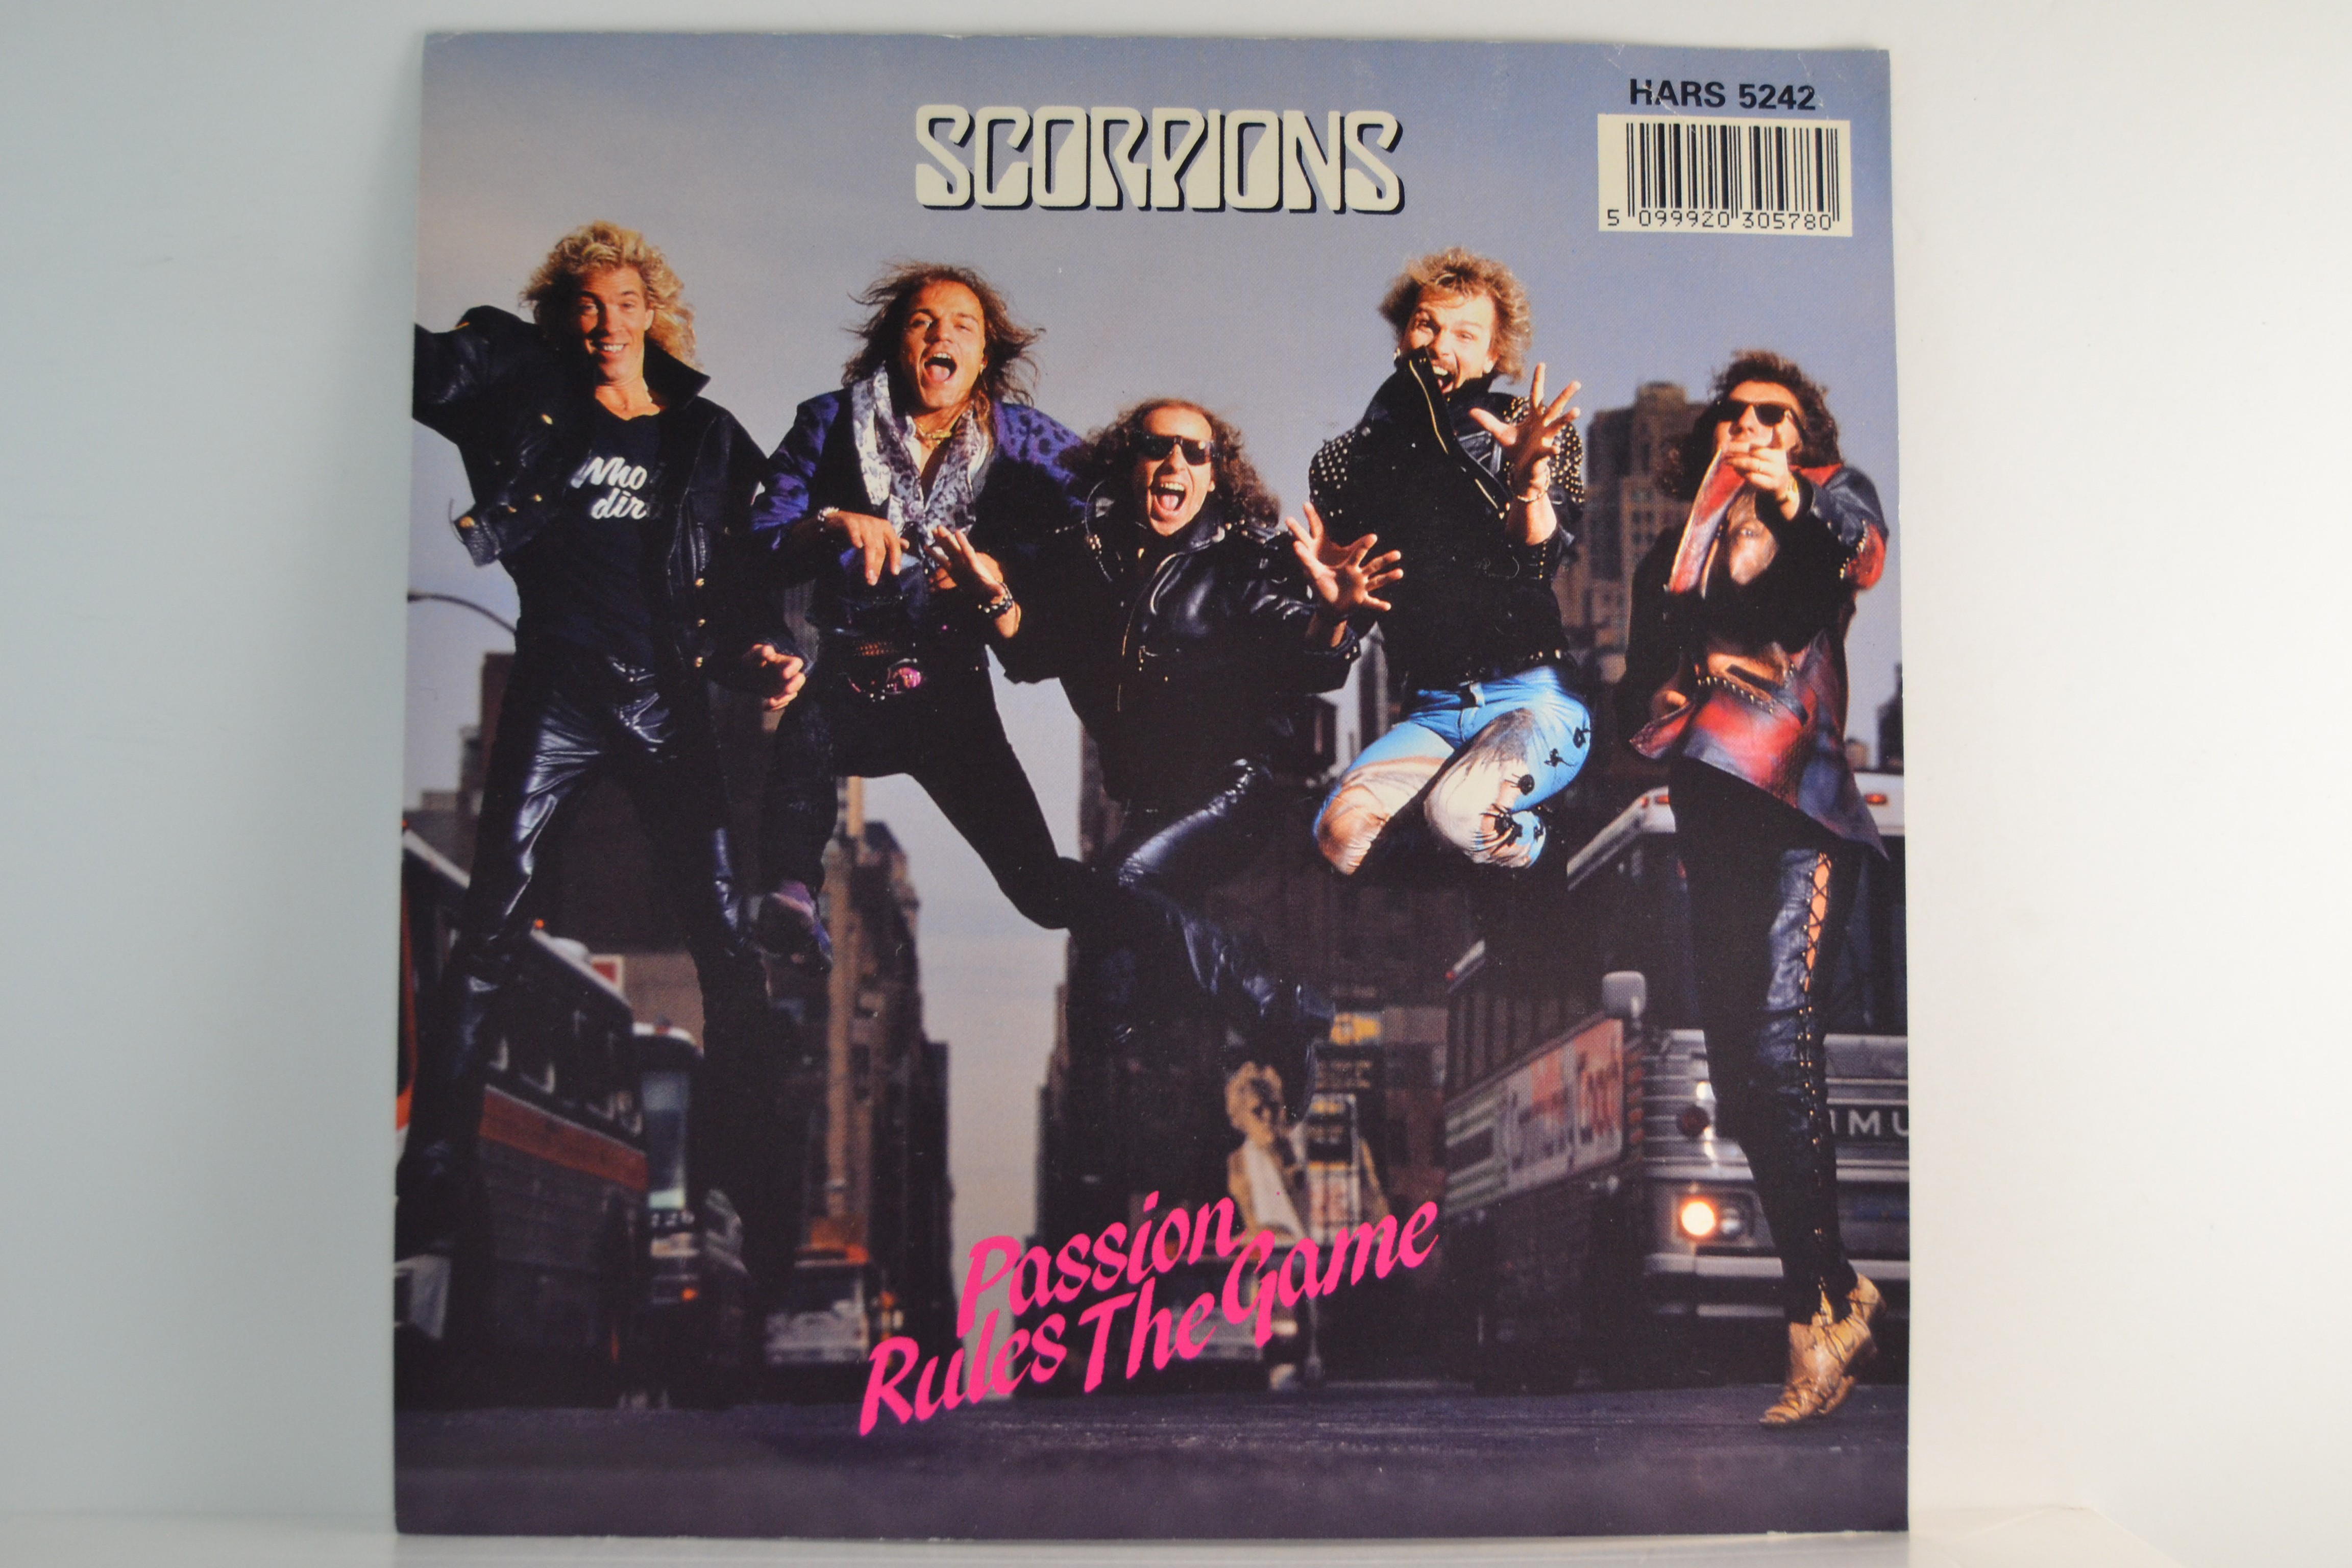 SCORPIONS : Passion rules the game / Every minute every day